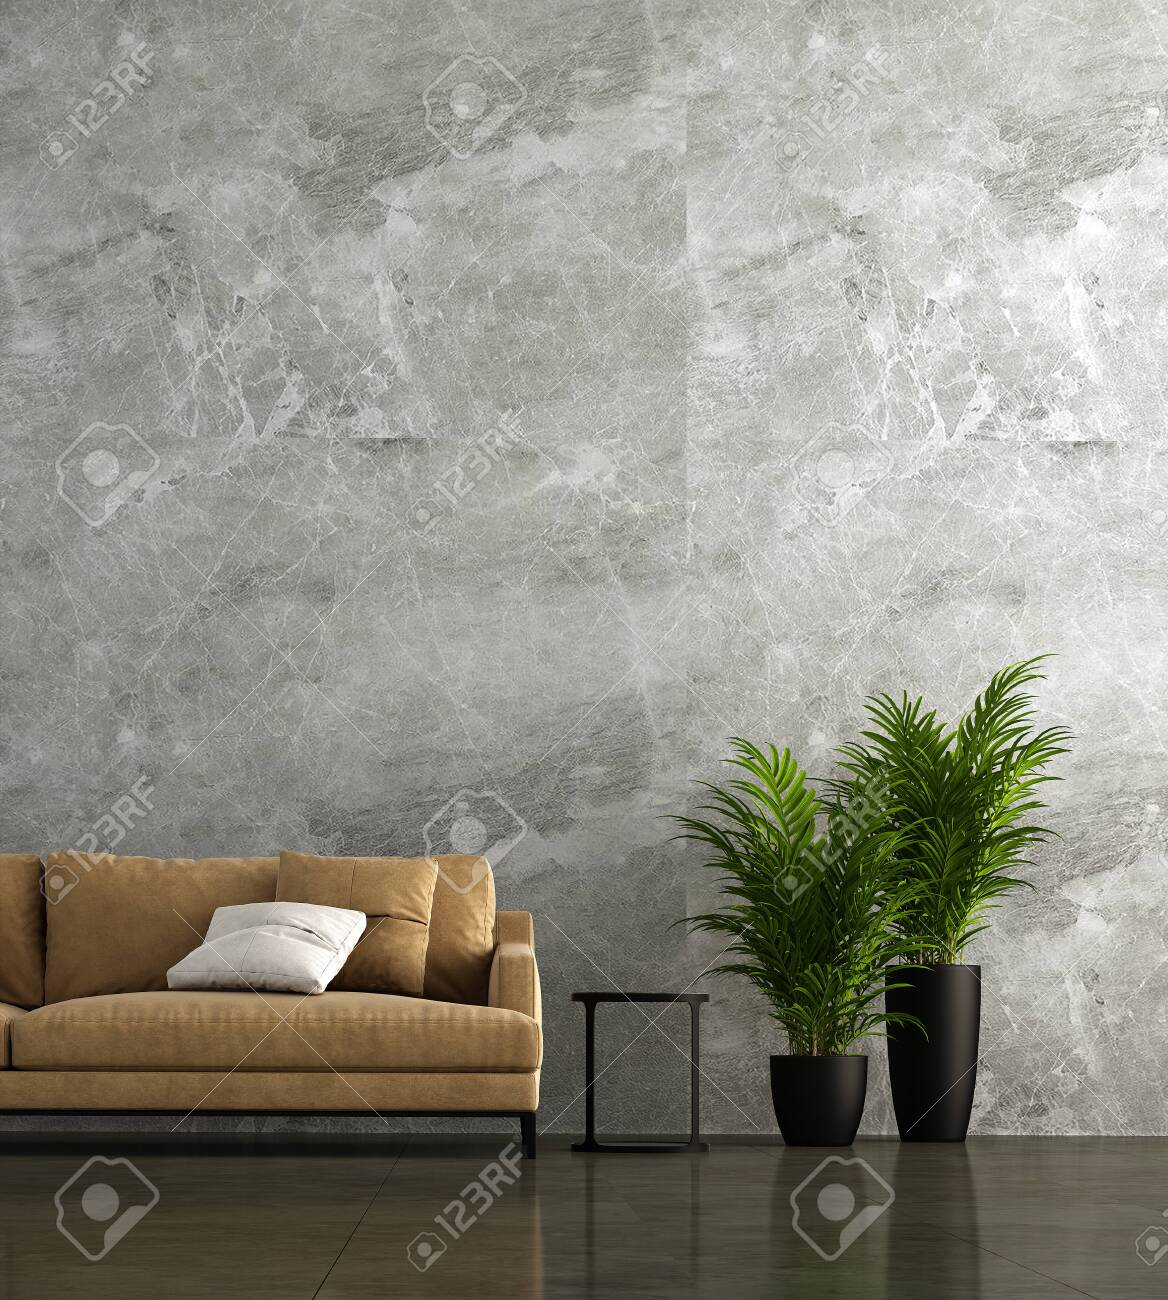 Modern Living Room Interior Design And Marble Wall Texture Background Stock Photo Picture And Royalty Free Image Image 122204173